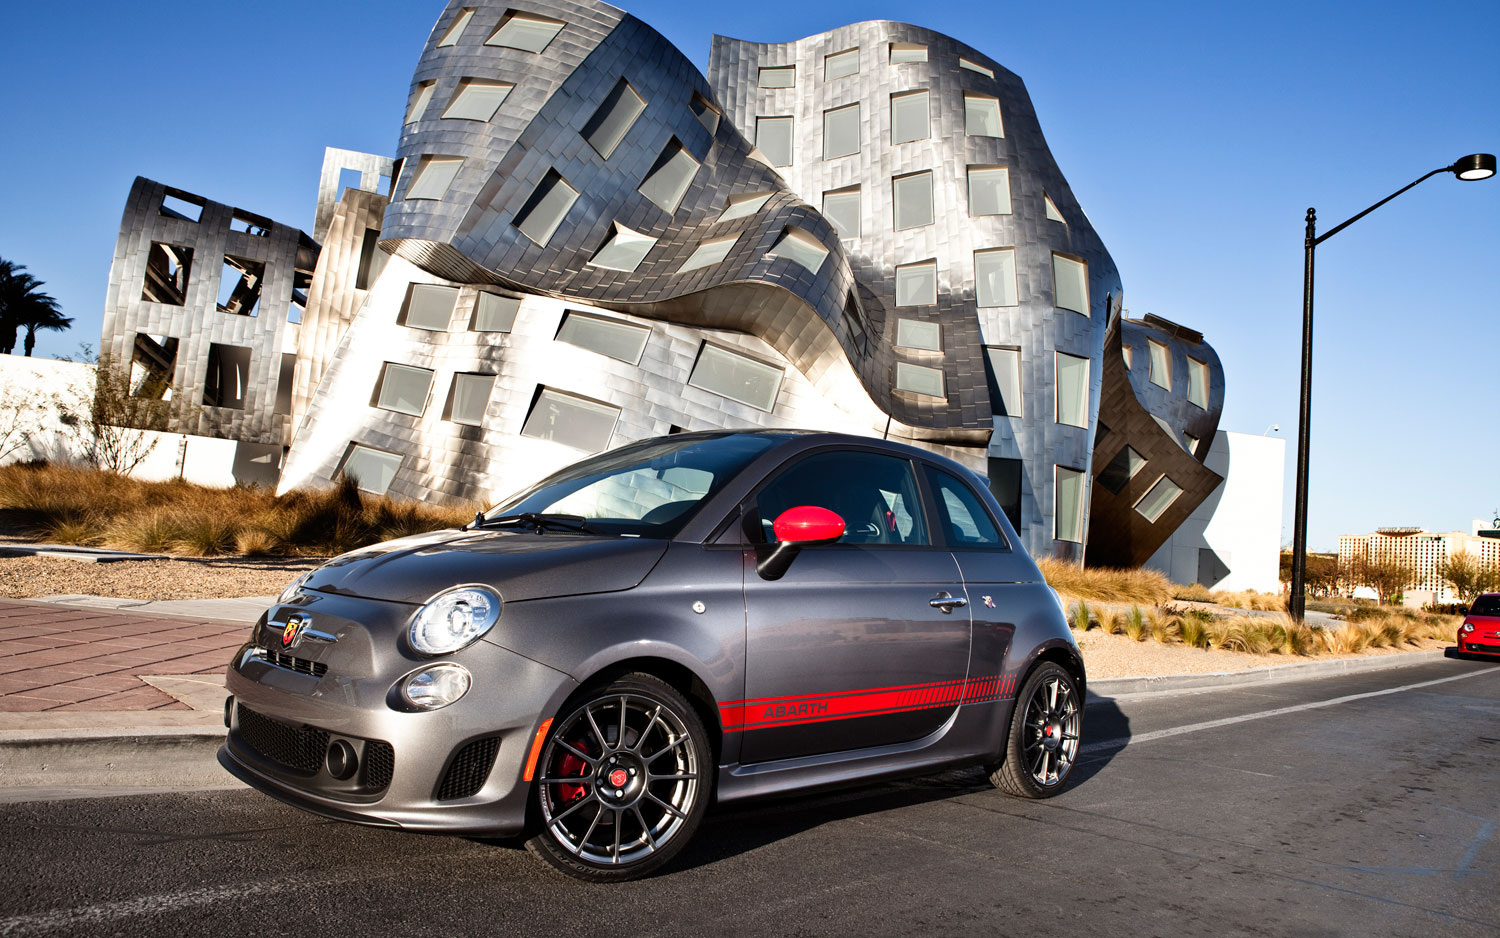 2012 Fiat 500 Abarth Driver Side1